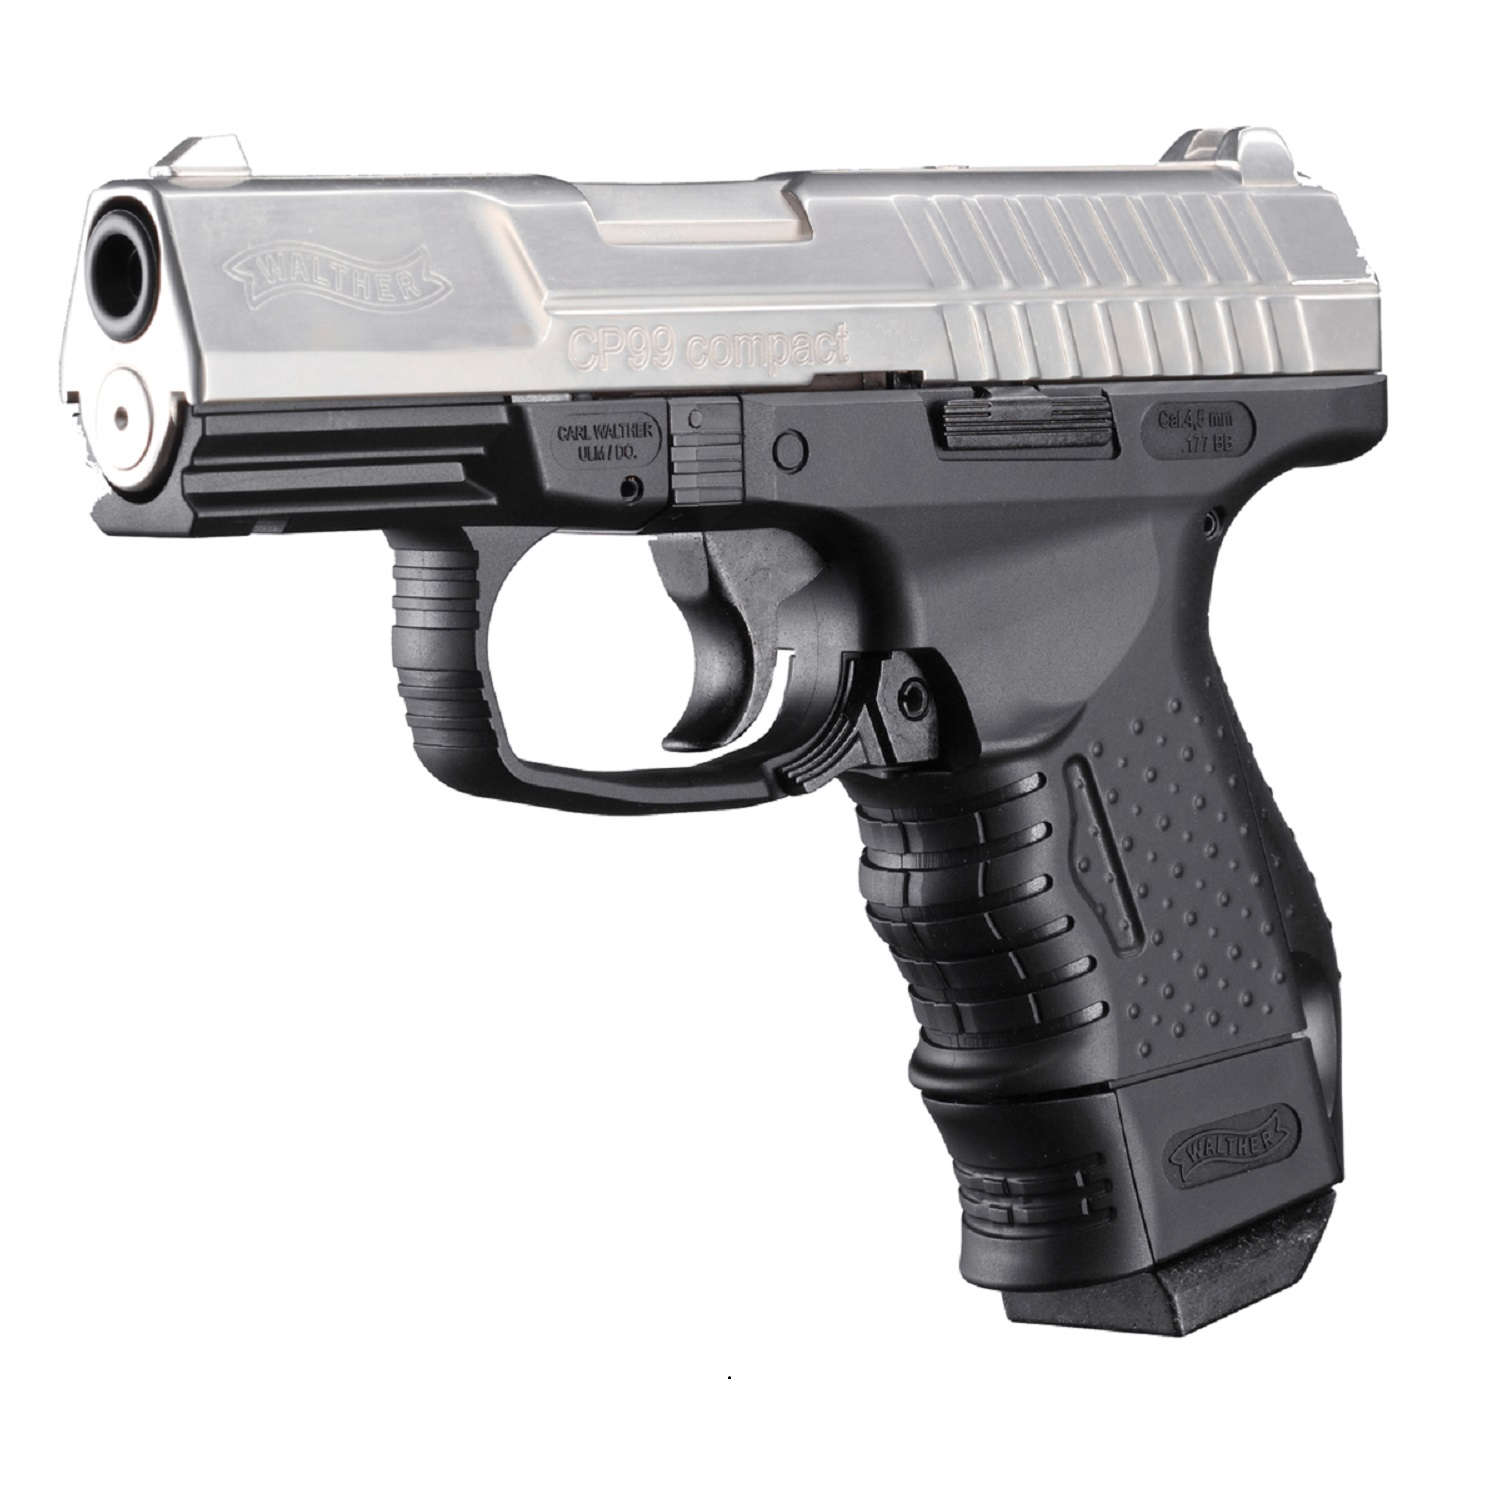 walther cp99 compact bb pistol bi color walmart com rh walmart com Walther CP99 BB Gun Umarex Walther CP99 Compact